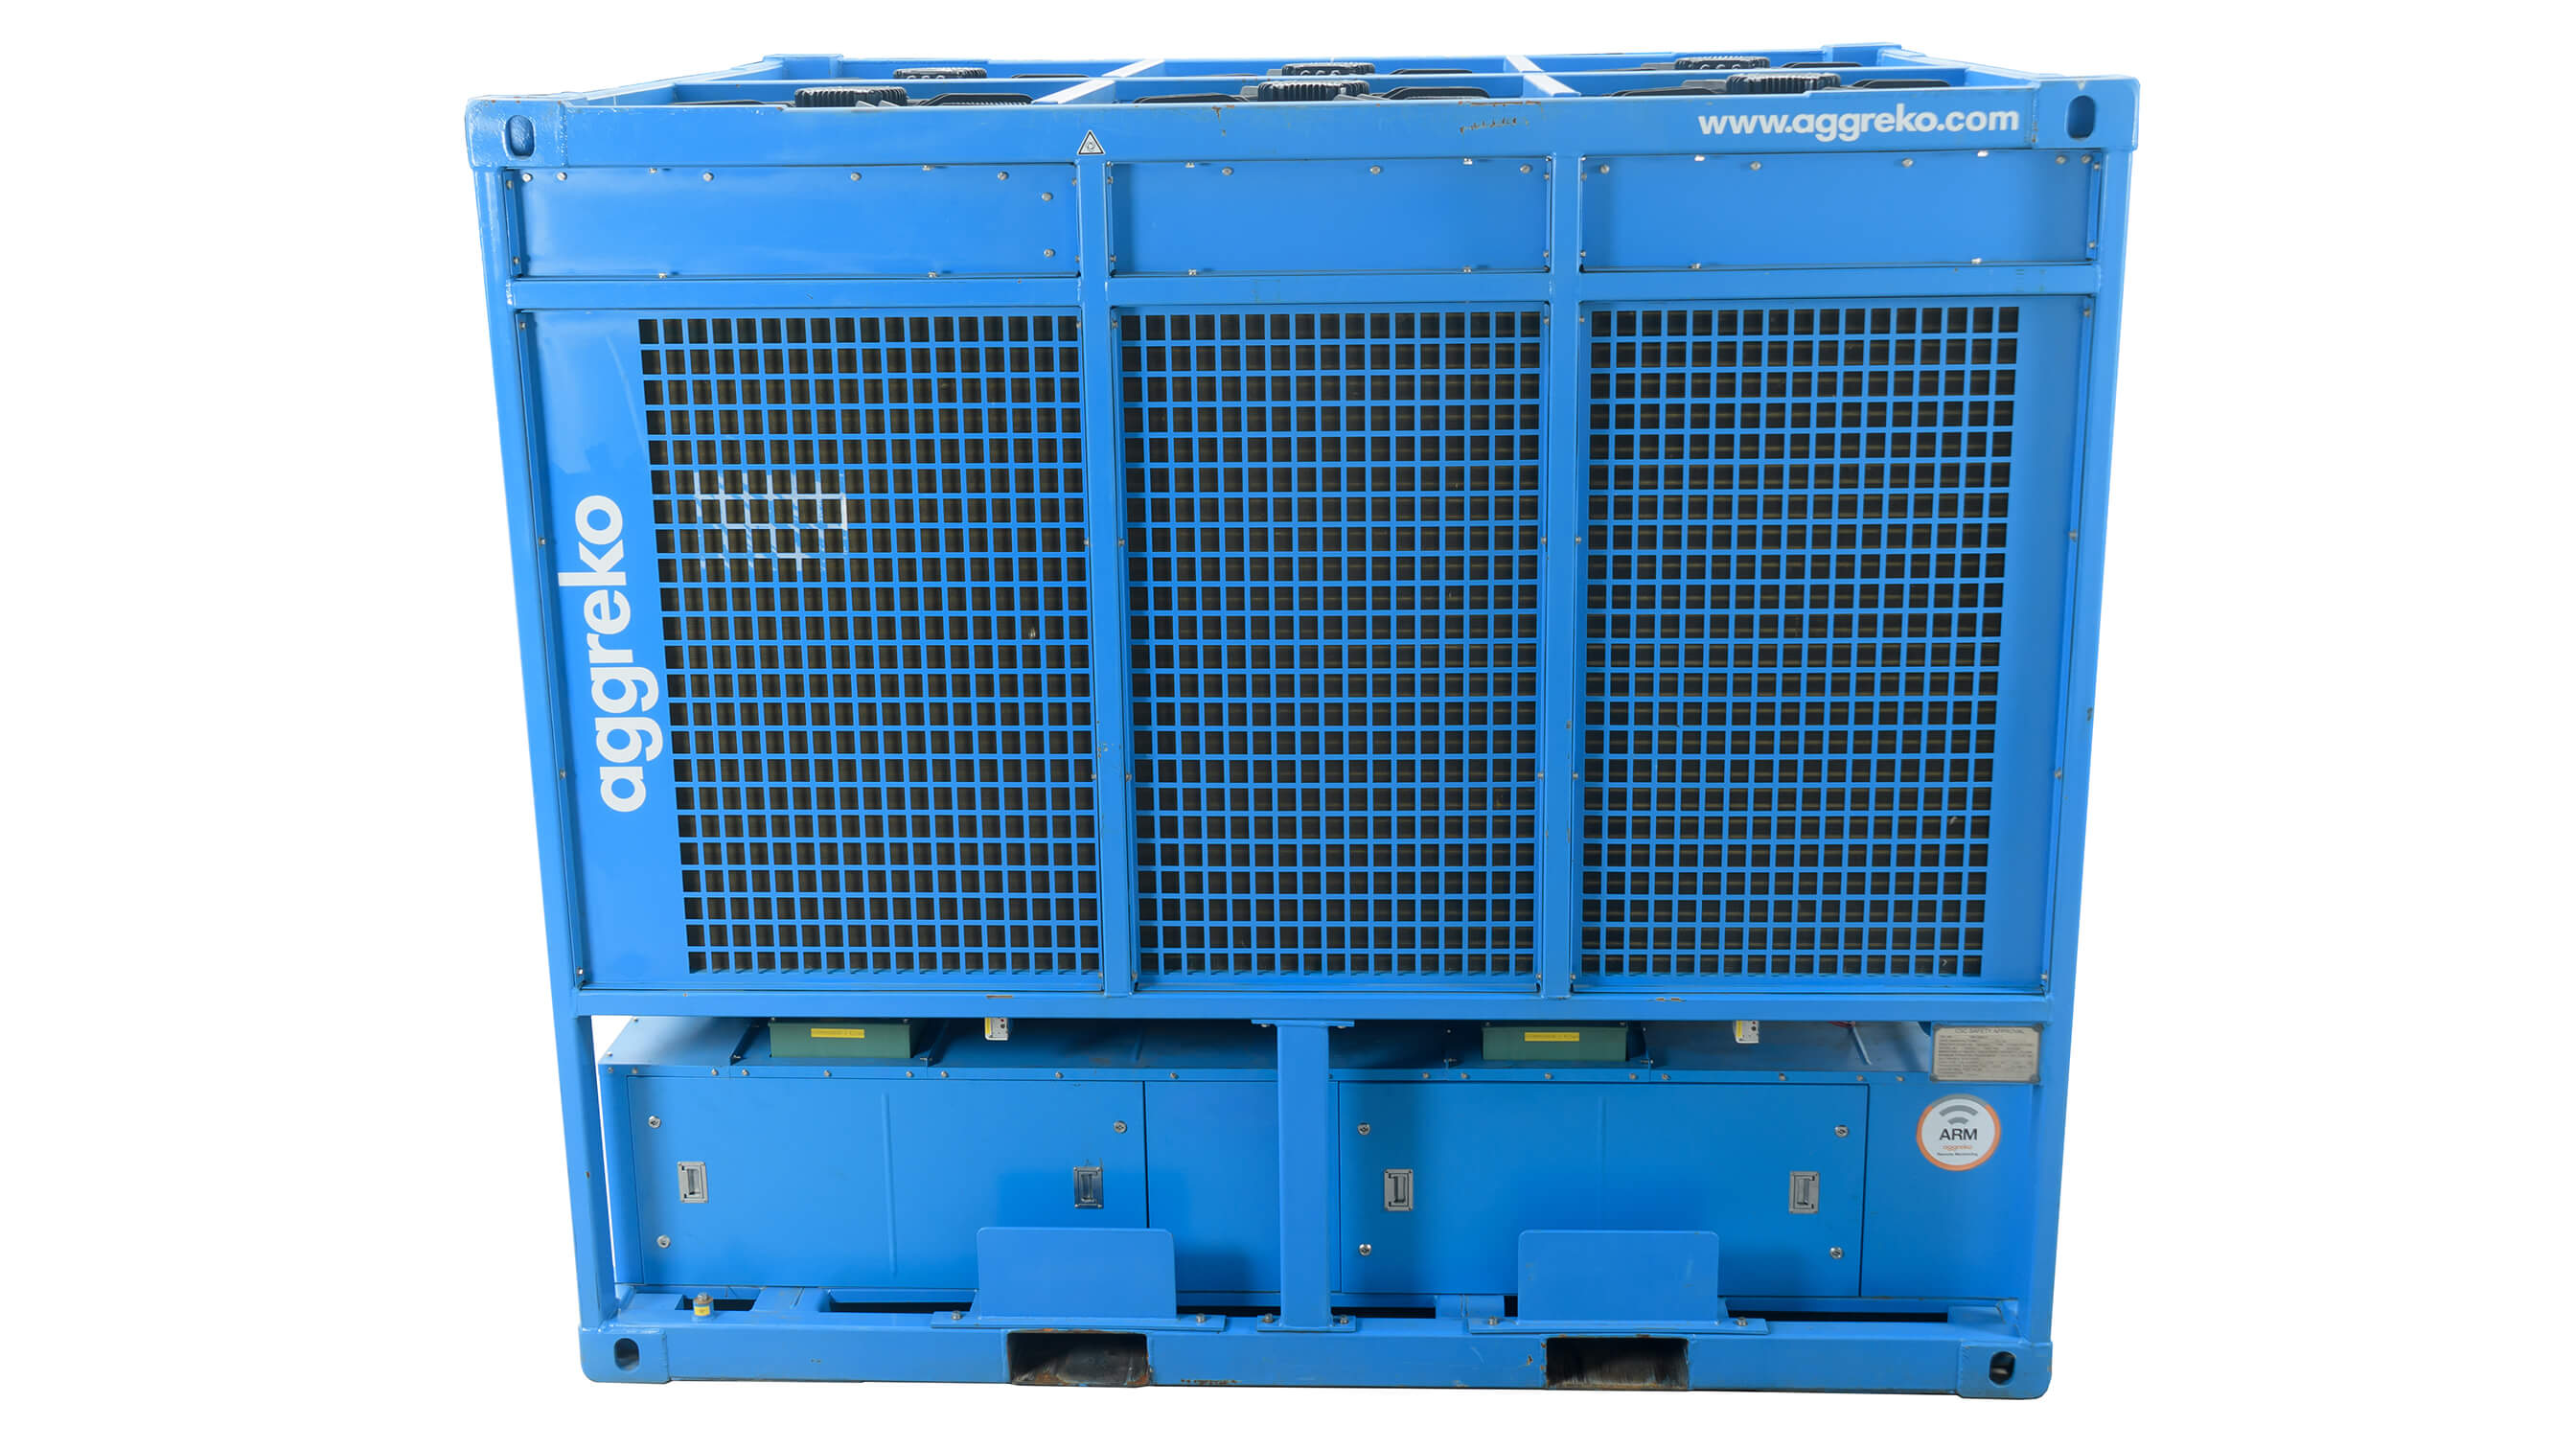 400 kW Chiller Front